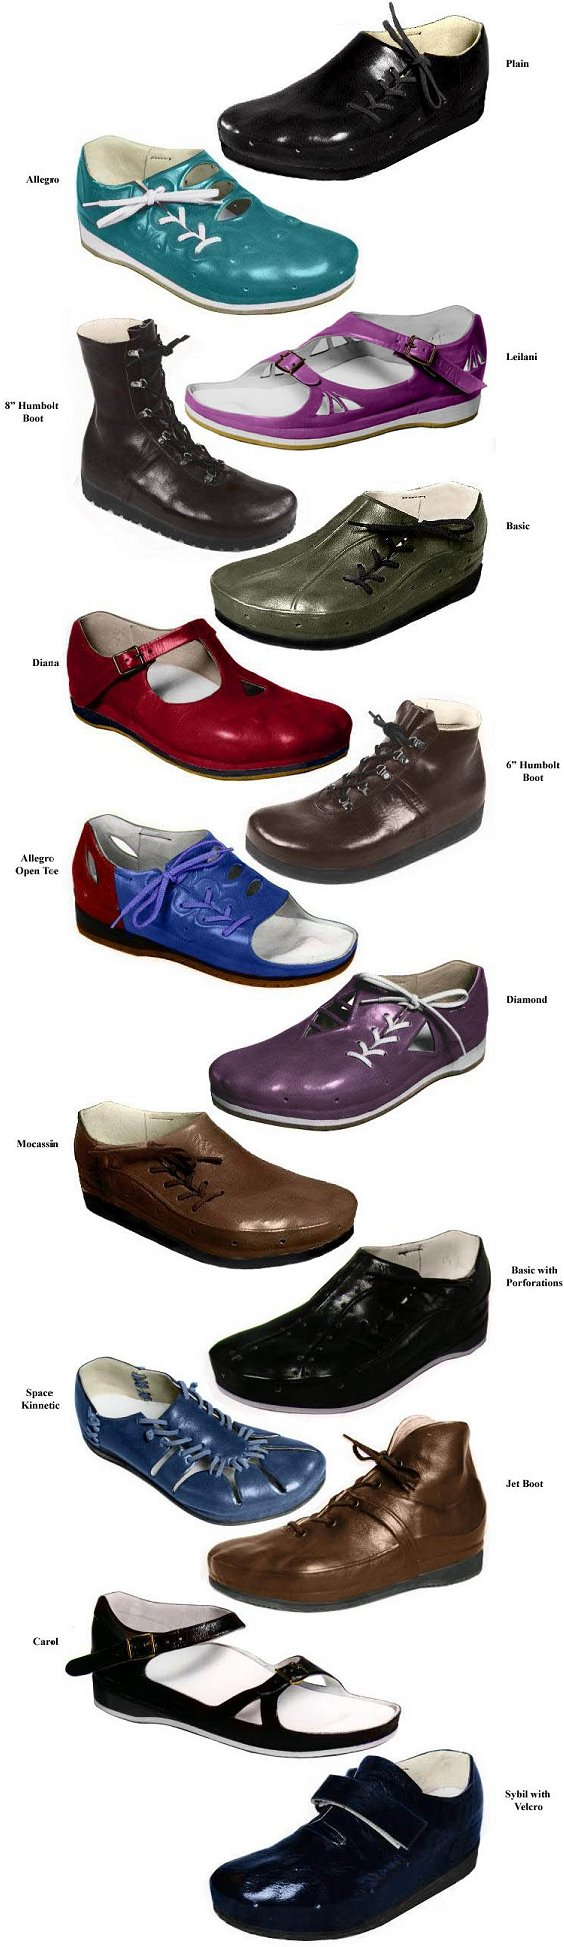 custom shoe provides the ultimate in comfort for your feet